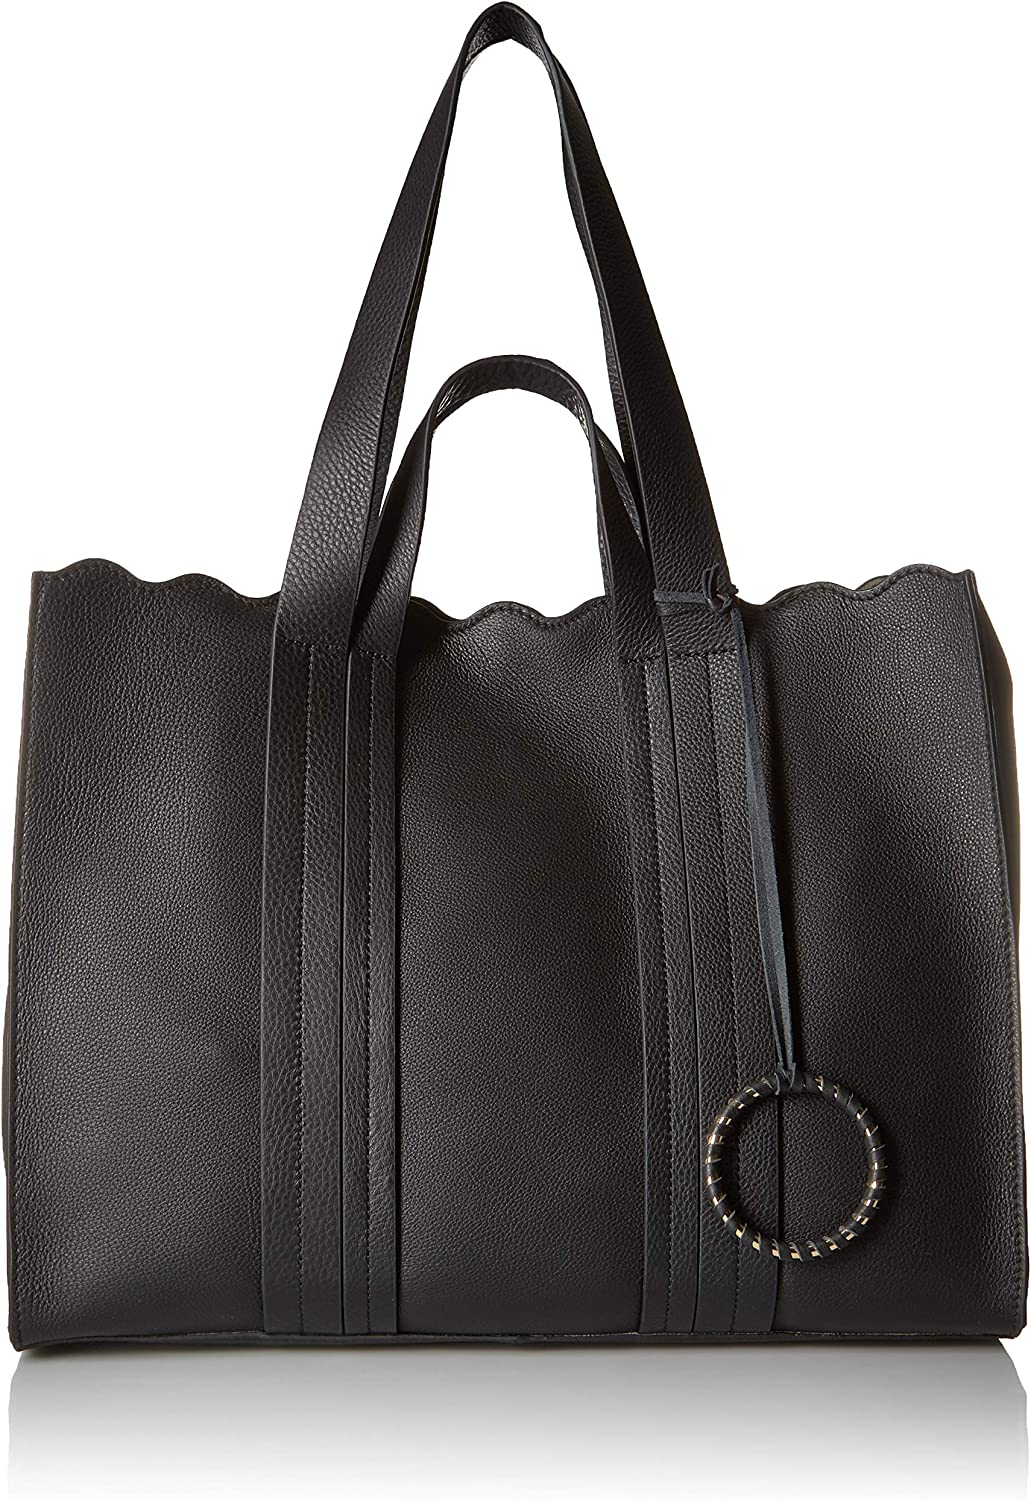 Vince Camuto Wavy Tote